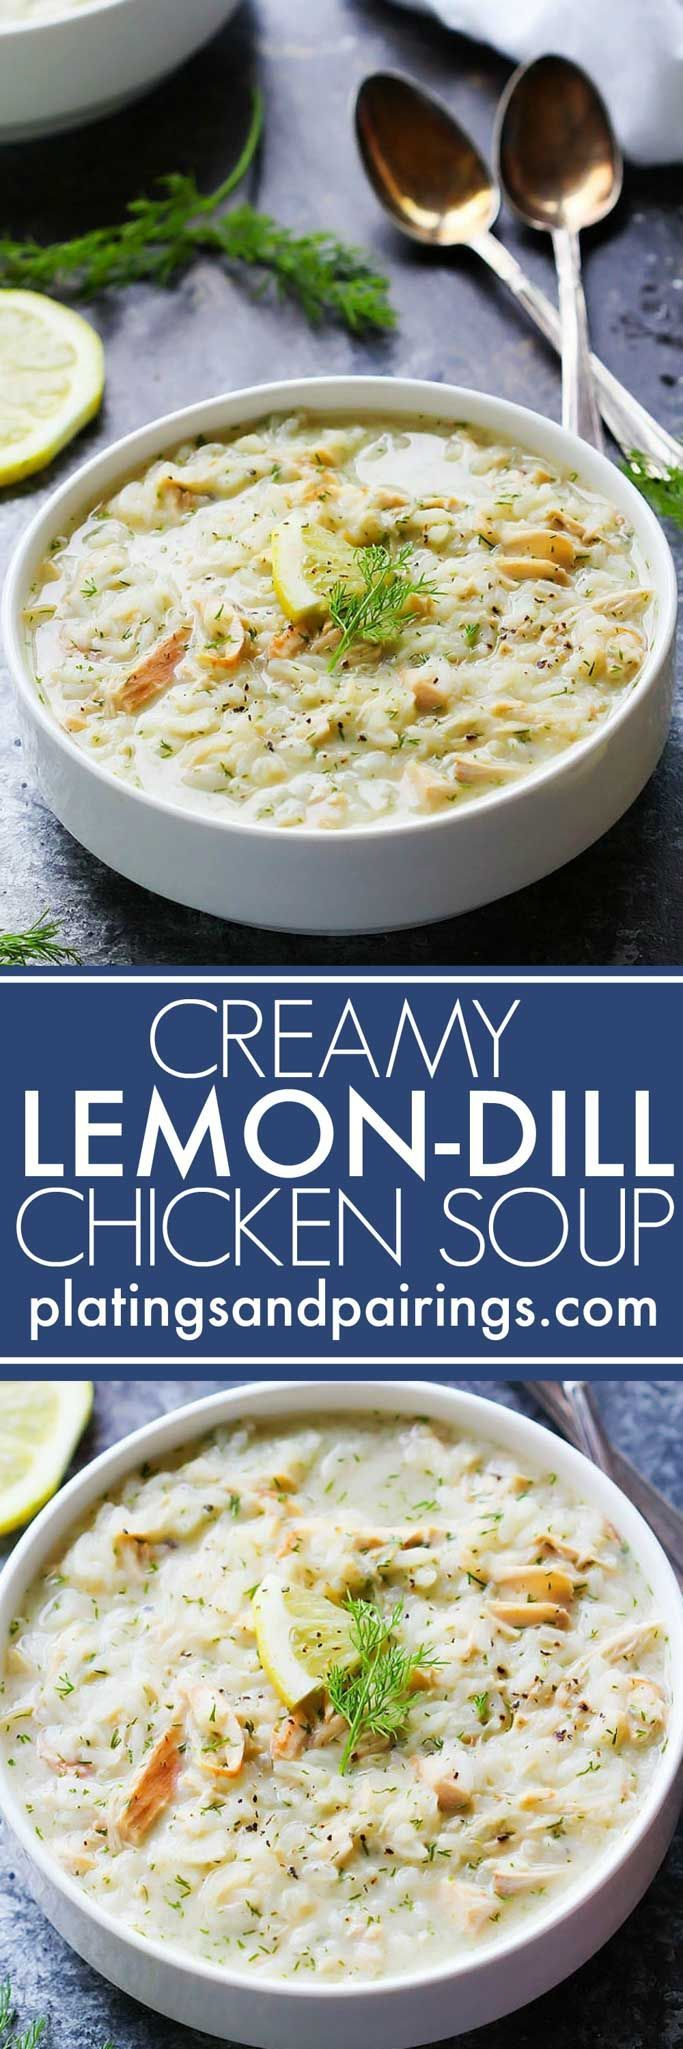 This Creamy Lemon Dill Chicken Soup is delicious with a hint of lemony brightness to warm you up on chilly winter days! | http://platingsandpairings.com